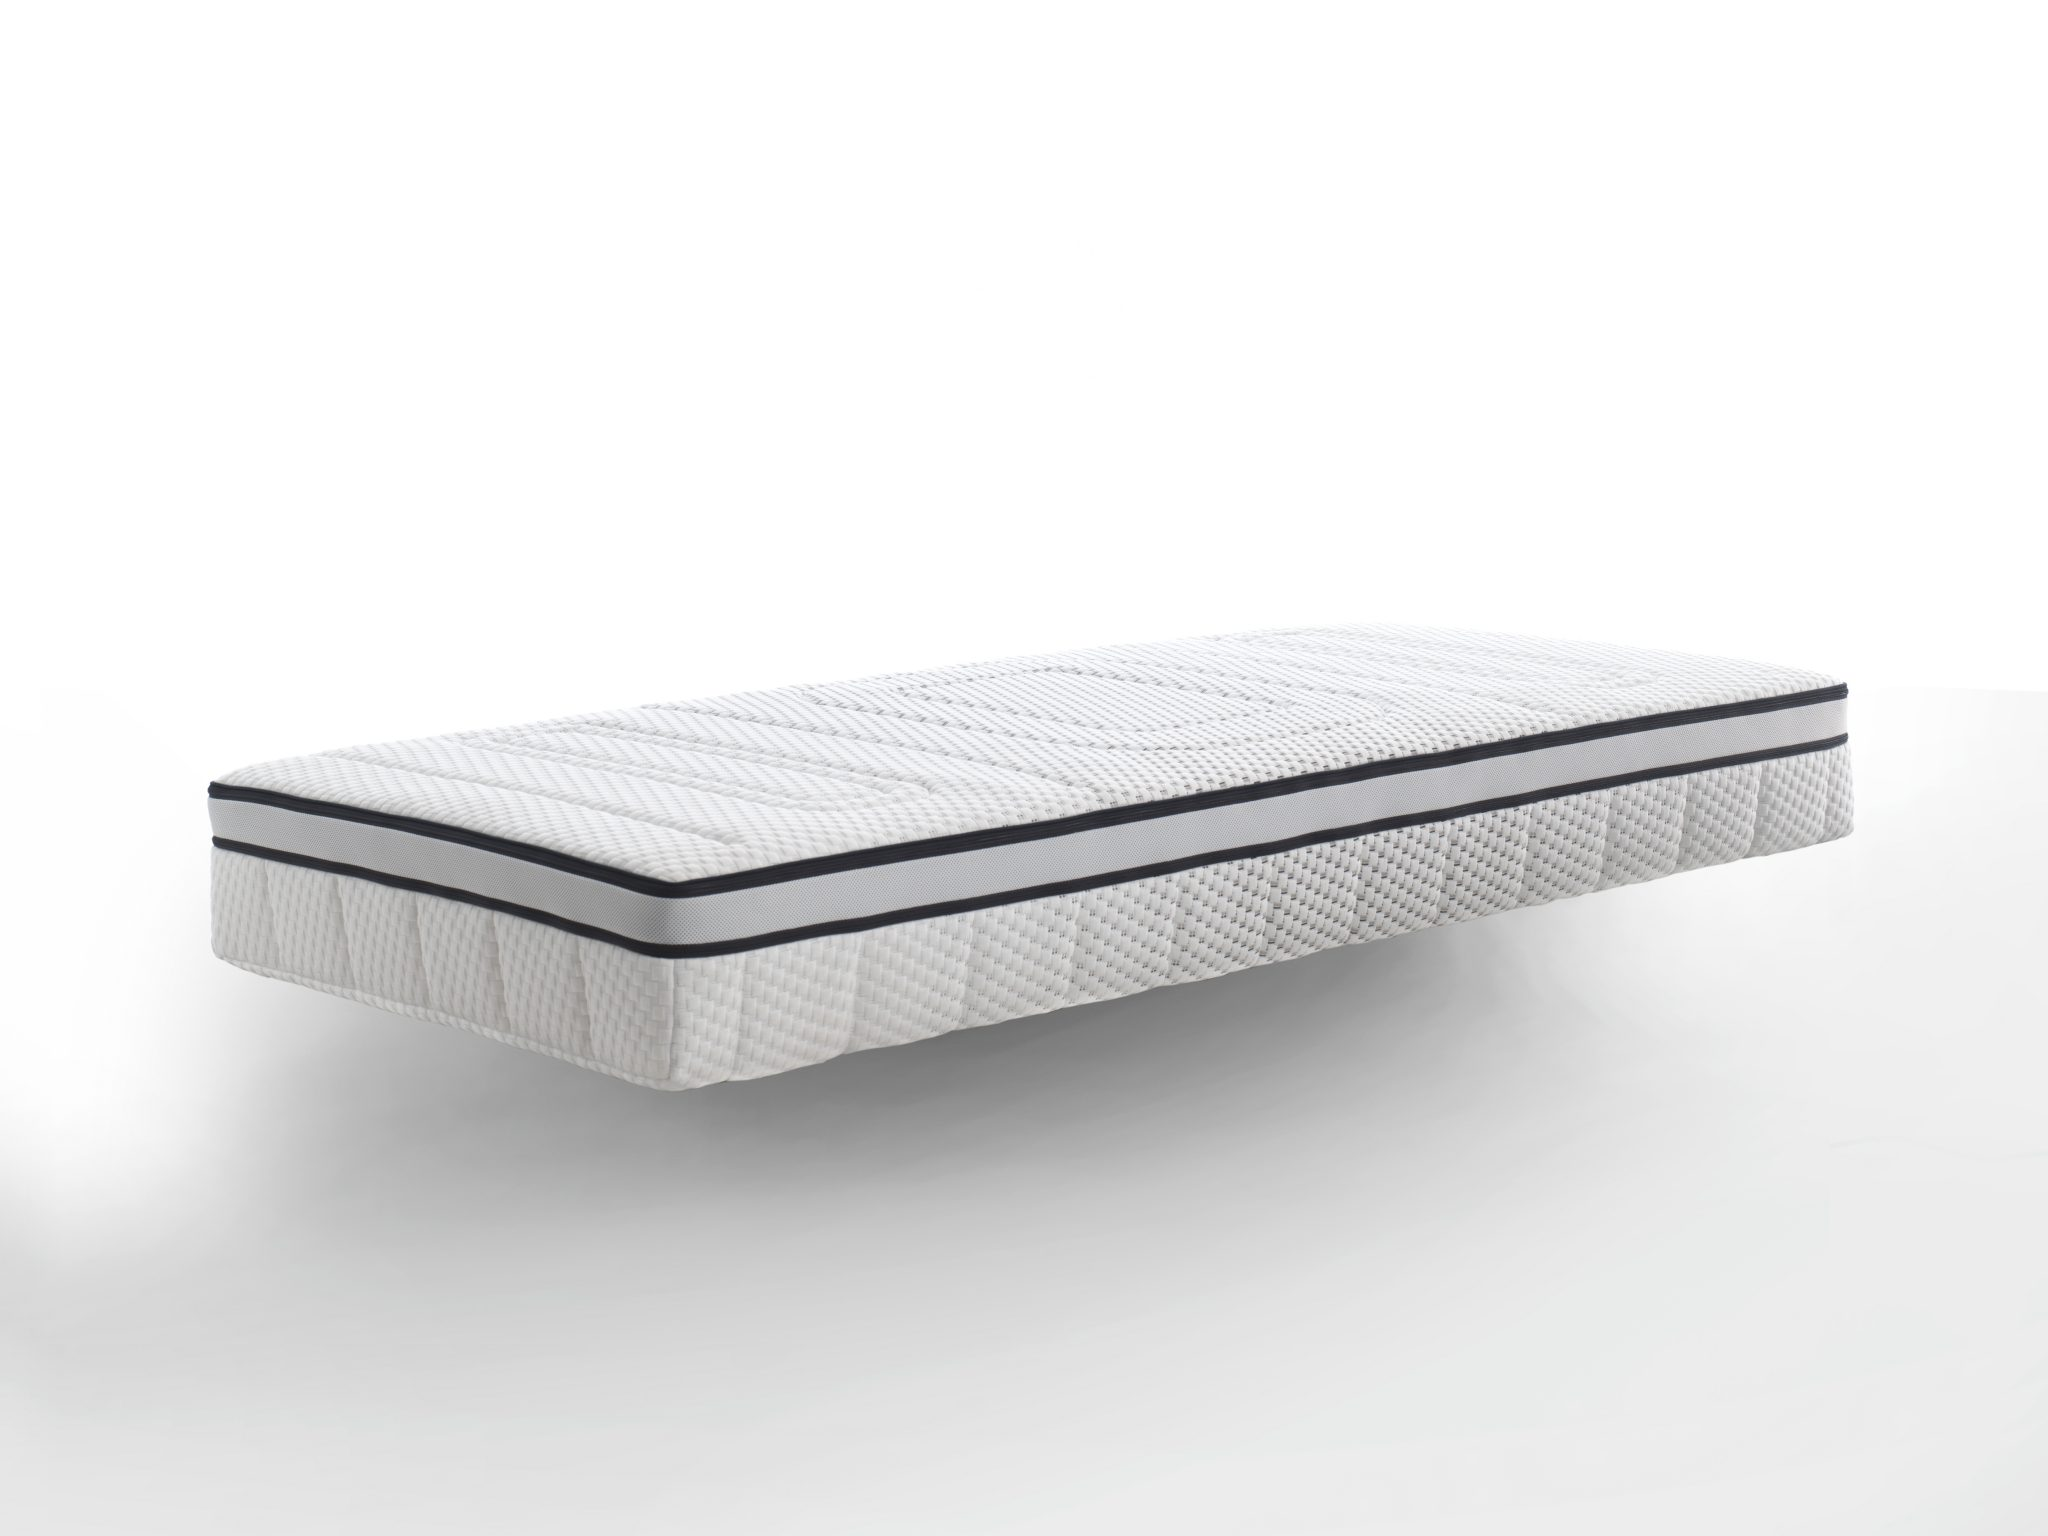 matelas lit double top matelas ressorts po double. Black Bedroom Furniture Sets. Home Design Ideas